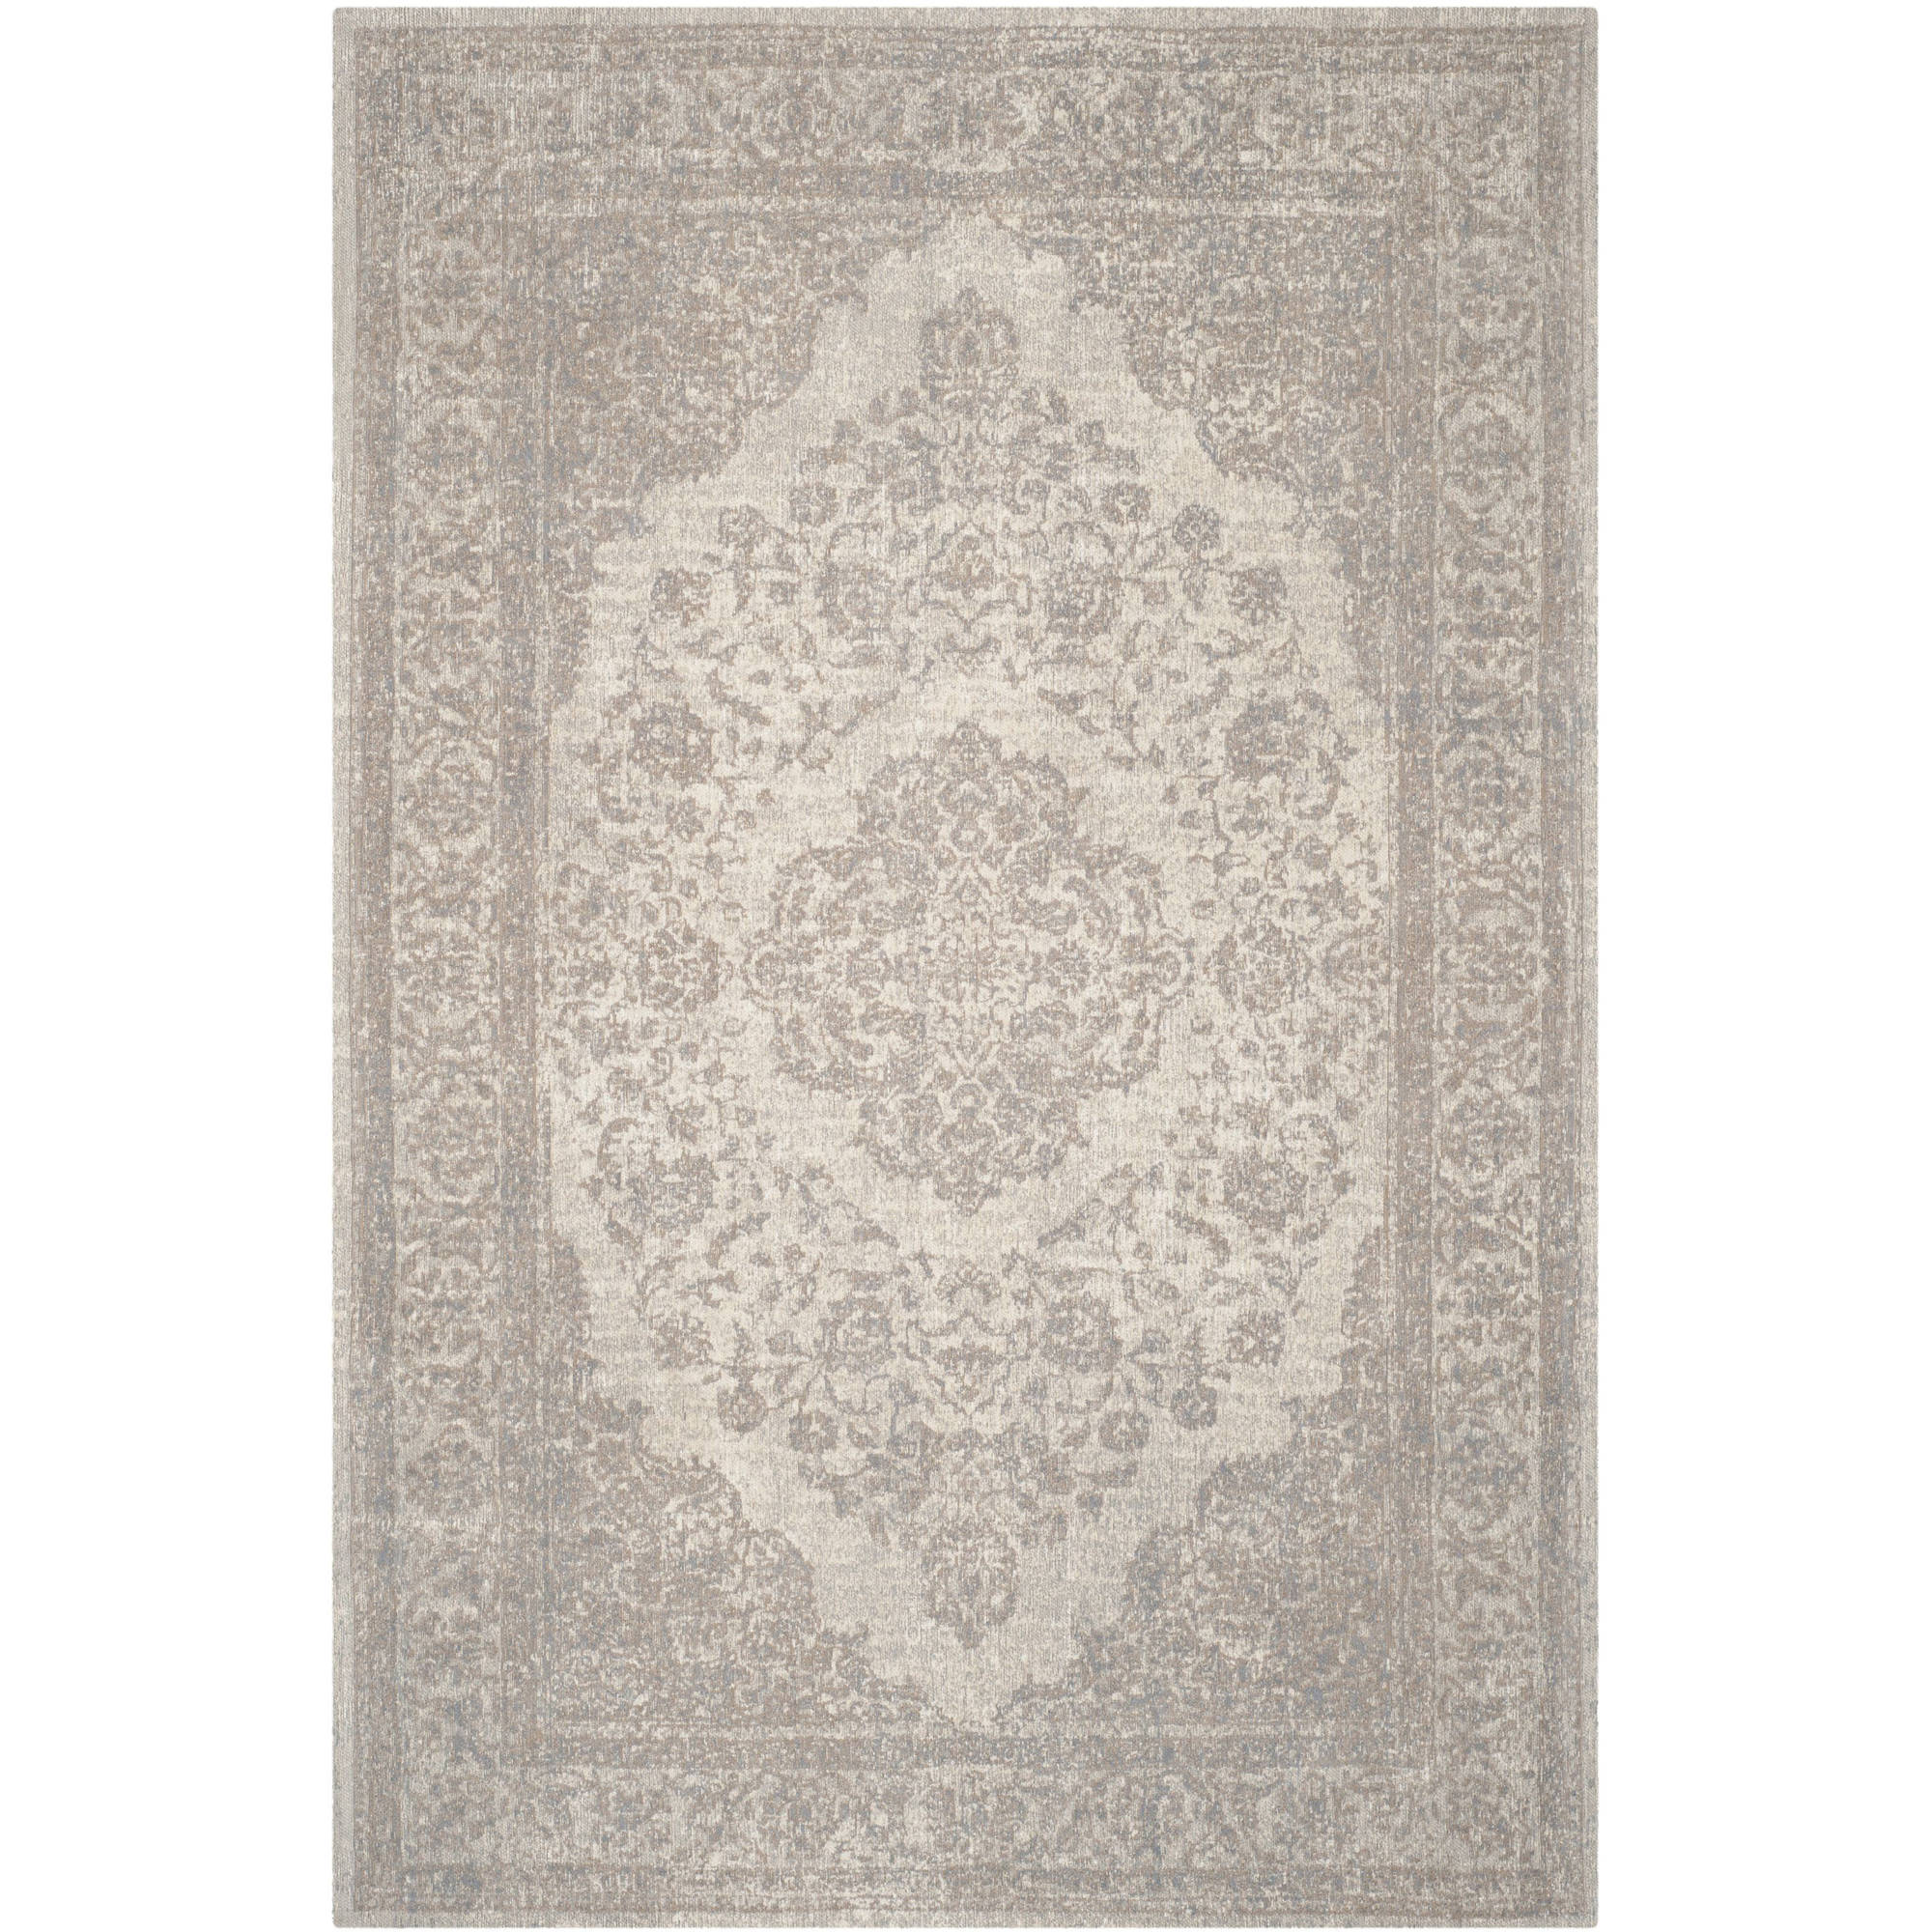 Safavieh Classic Vintage Ethelred Power-Loomed Cotton Area Rug